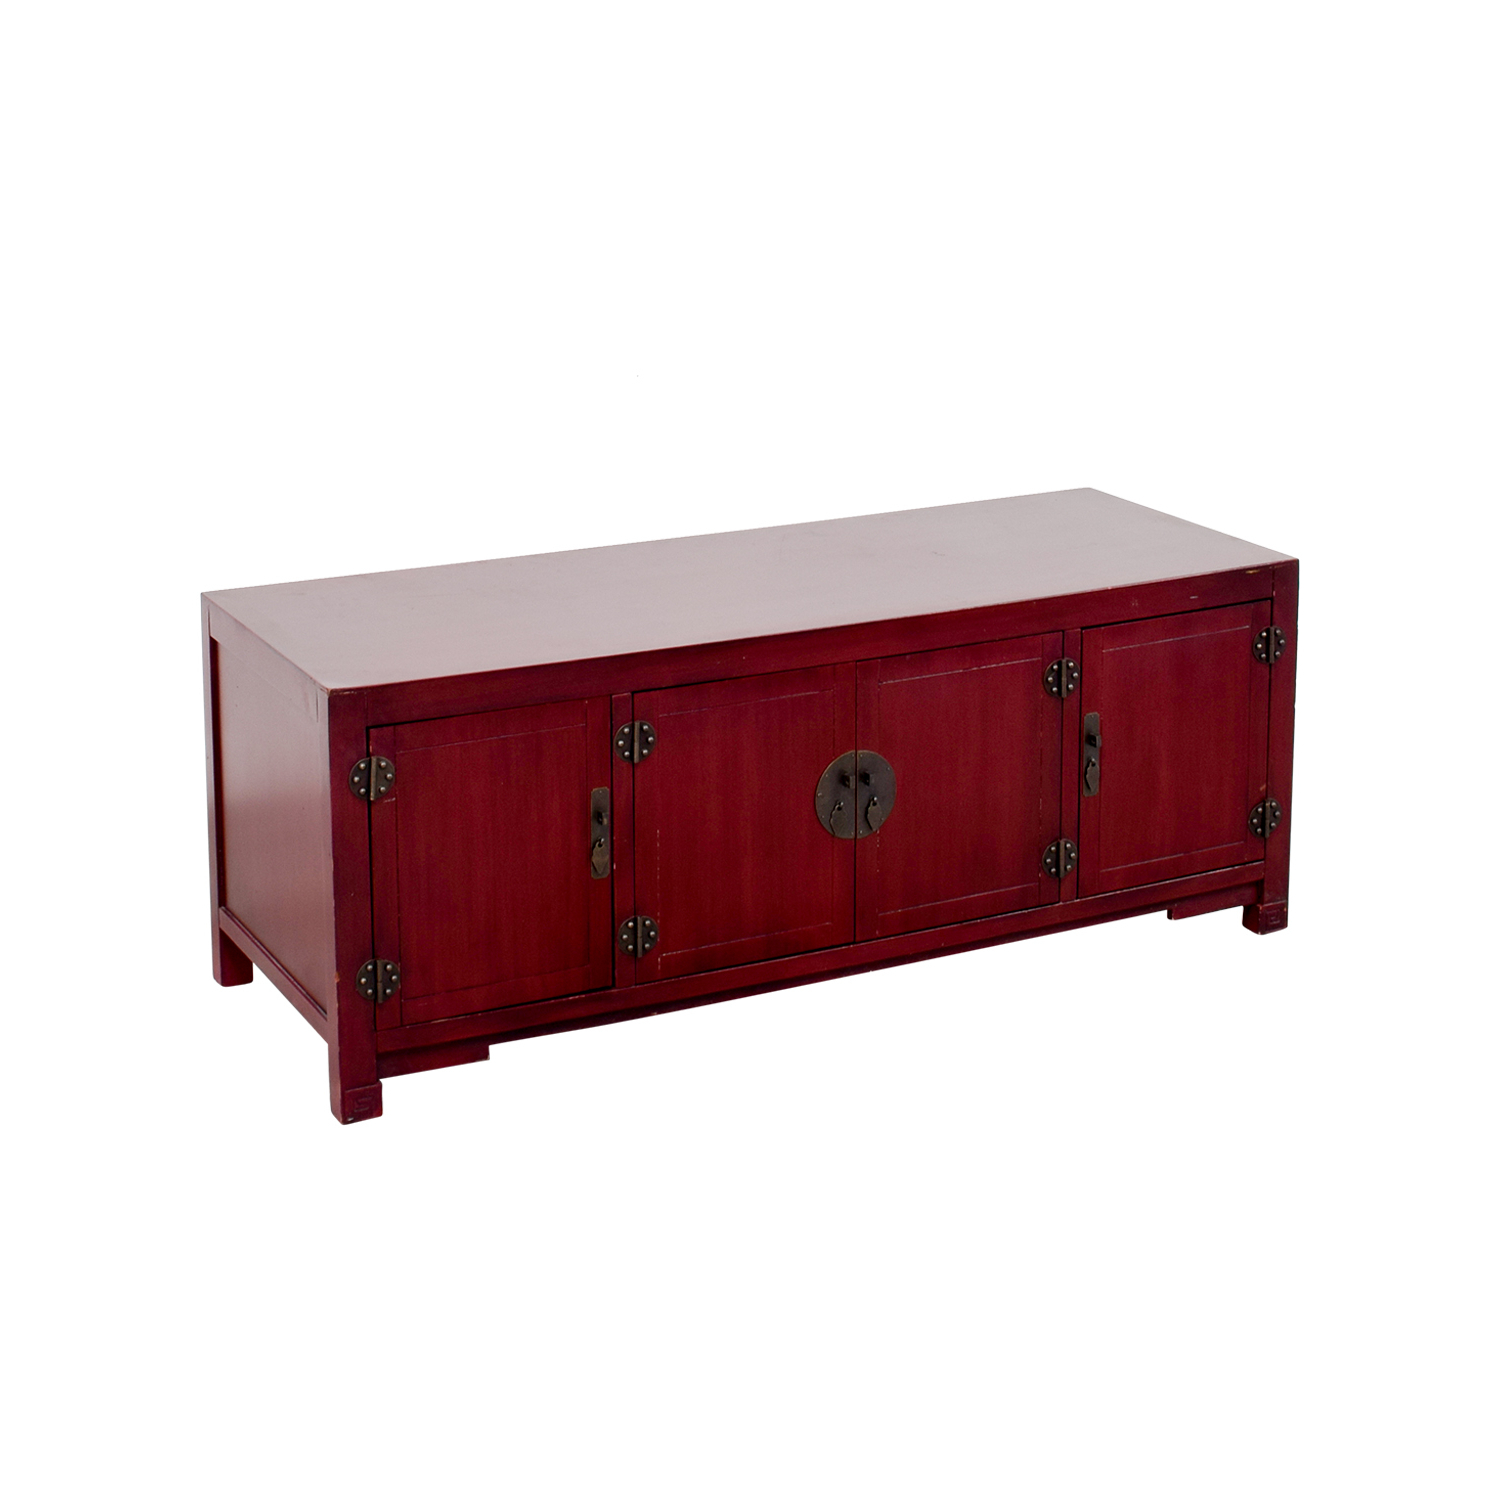 [%59% Off – Pier 1 Pier 1 Mei Antique Red Tv Stand / Storage In Popular Red Tv Stands|Red Tv Stands In 2018 59% Off – Pier 1 Pier 1 Mei Antique Red Tv Stand / Storage|Most Popular Red Tv Stands With Regard To 59% Off – Pier 1 Pier 1 Mei Antique Red Tv Stand / Storage|Well Liked 59% Off – Pier 1 Pier 1 Mei Antique Red Tv Stand / Storage Pertaining To Red Tv Stands%] (View 1 of 20)